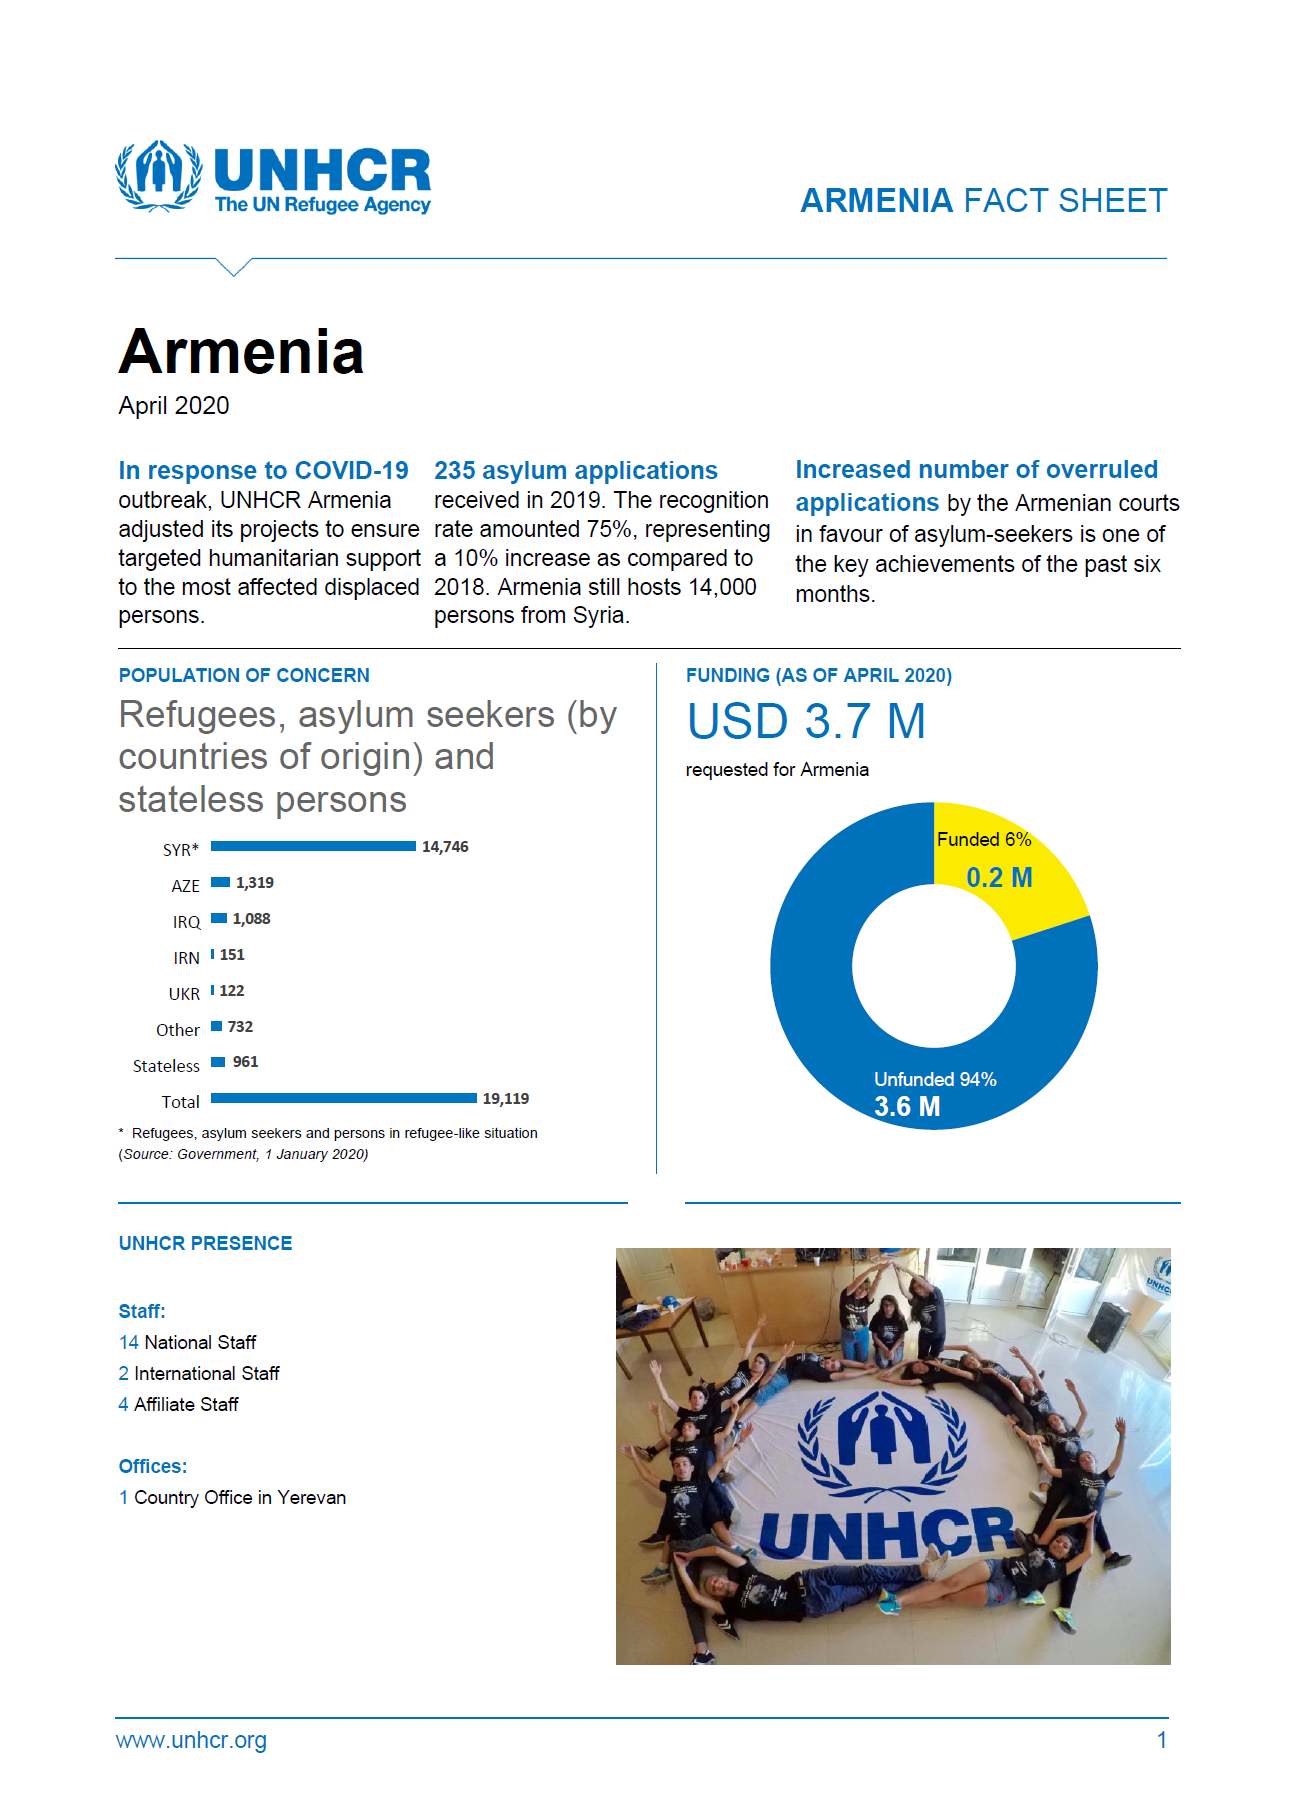 UNHCR Fact Sheet's cover page for April 2020